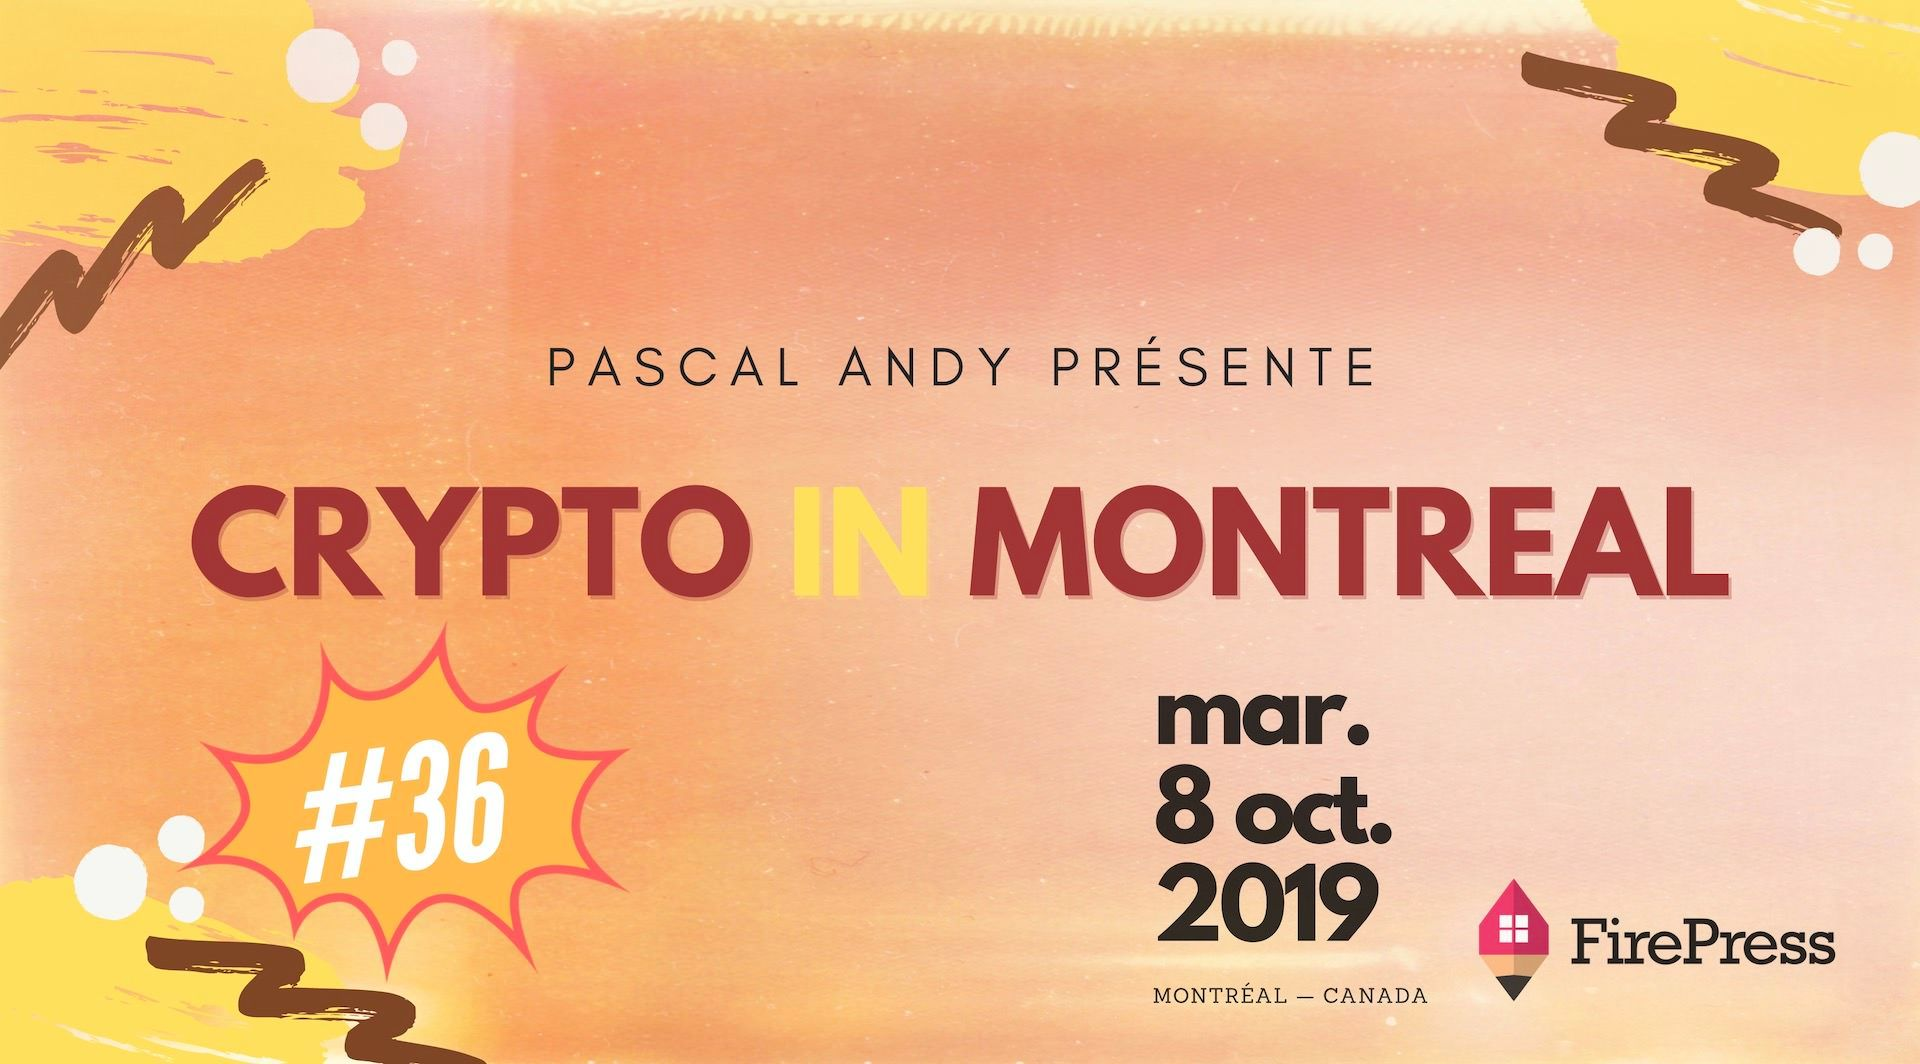 Bitcoin Decentralized Governance | CryptoInMontreal #36